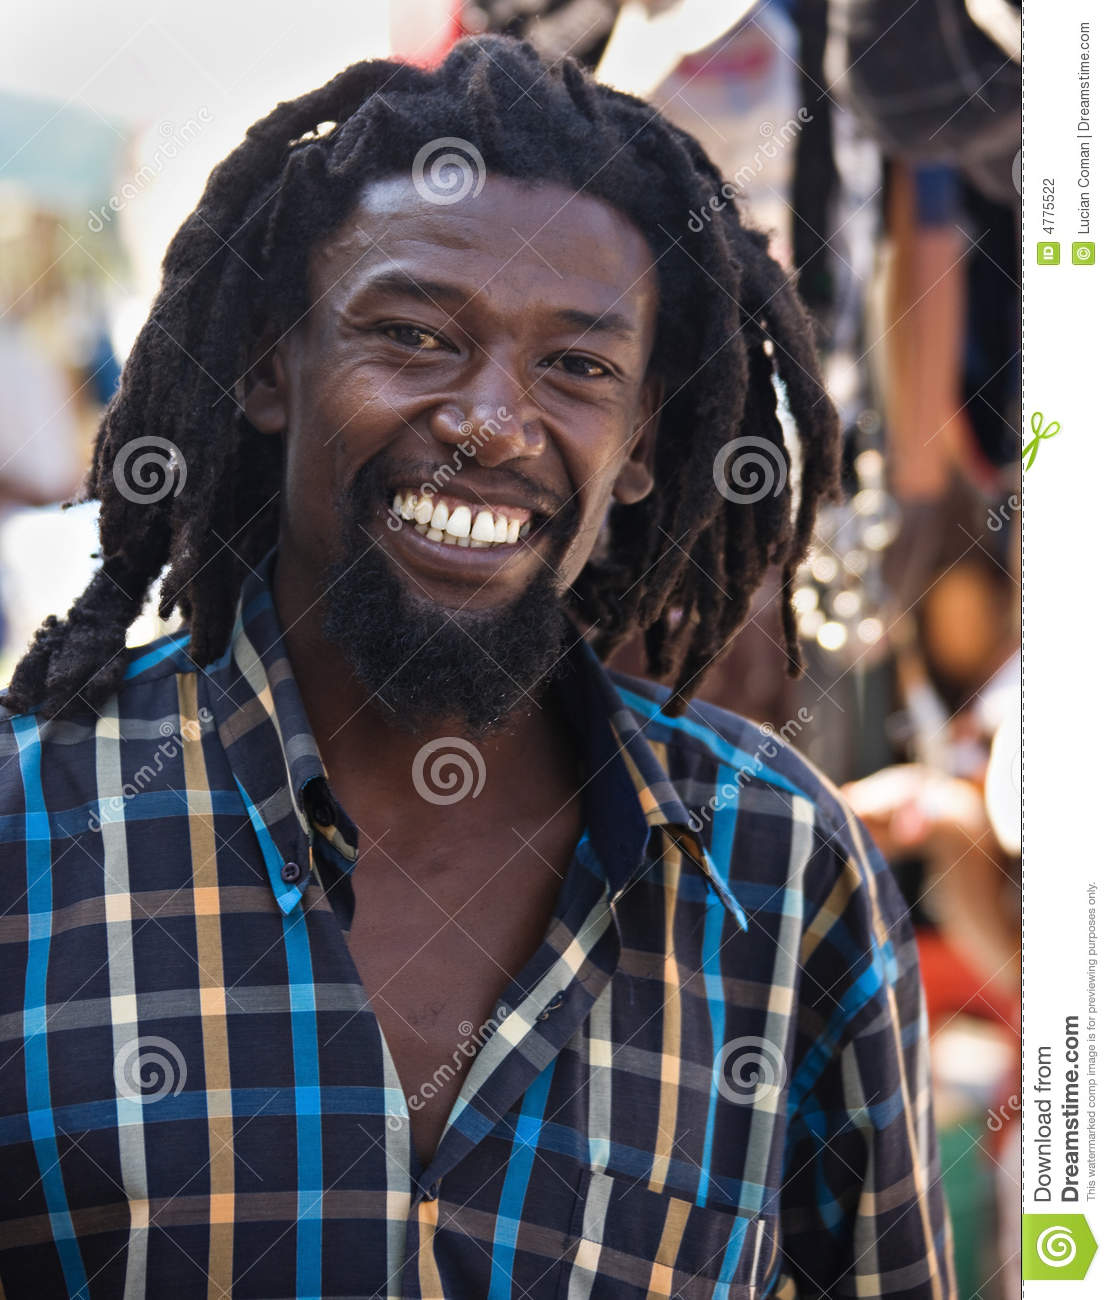 Rastafarian 2: Rastafarian Stock Photo. Image Of Culture, Teeth, African